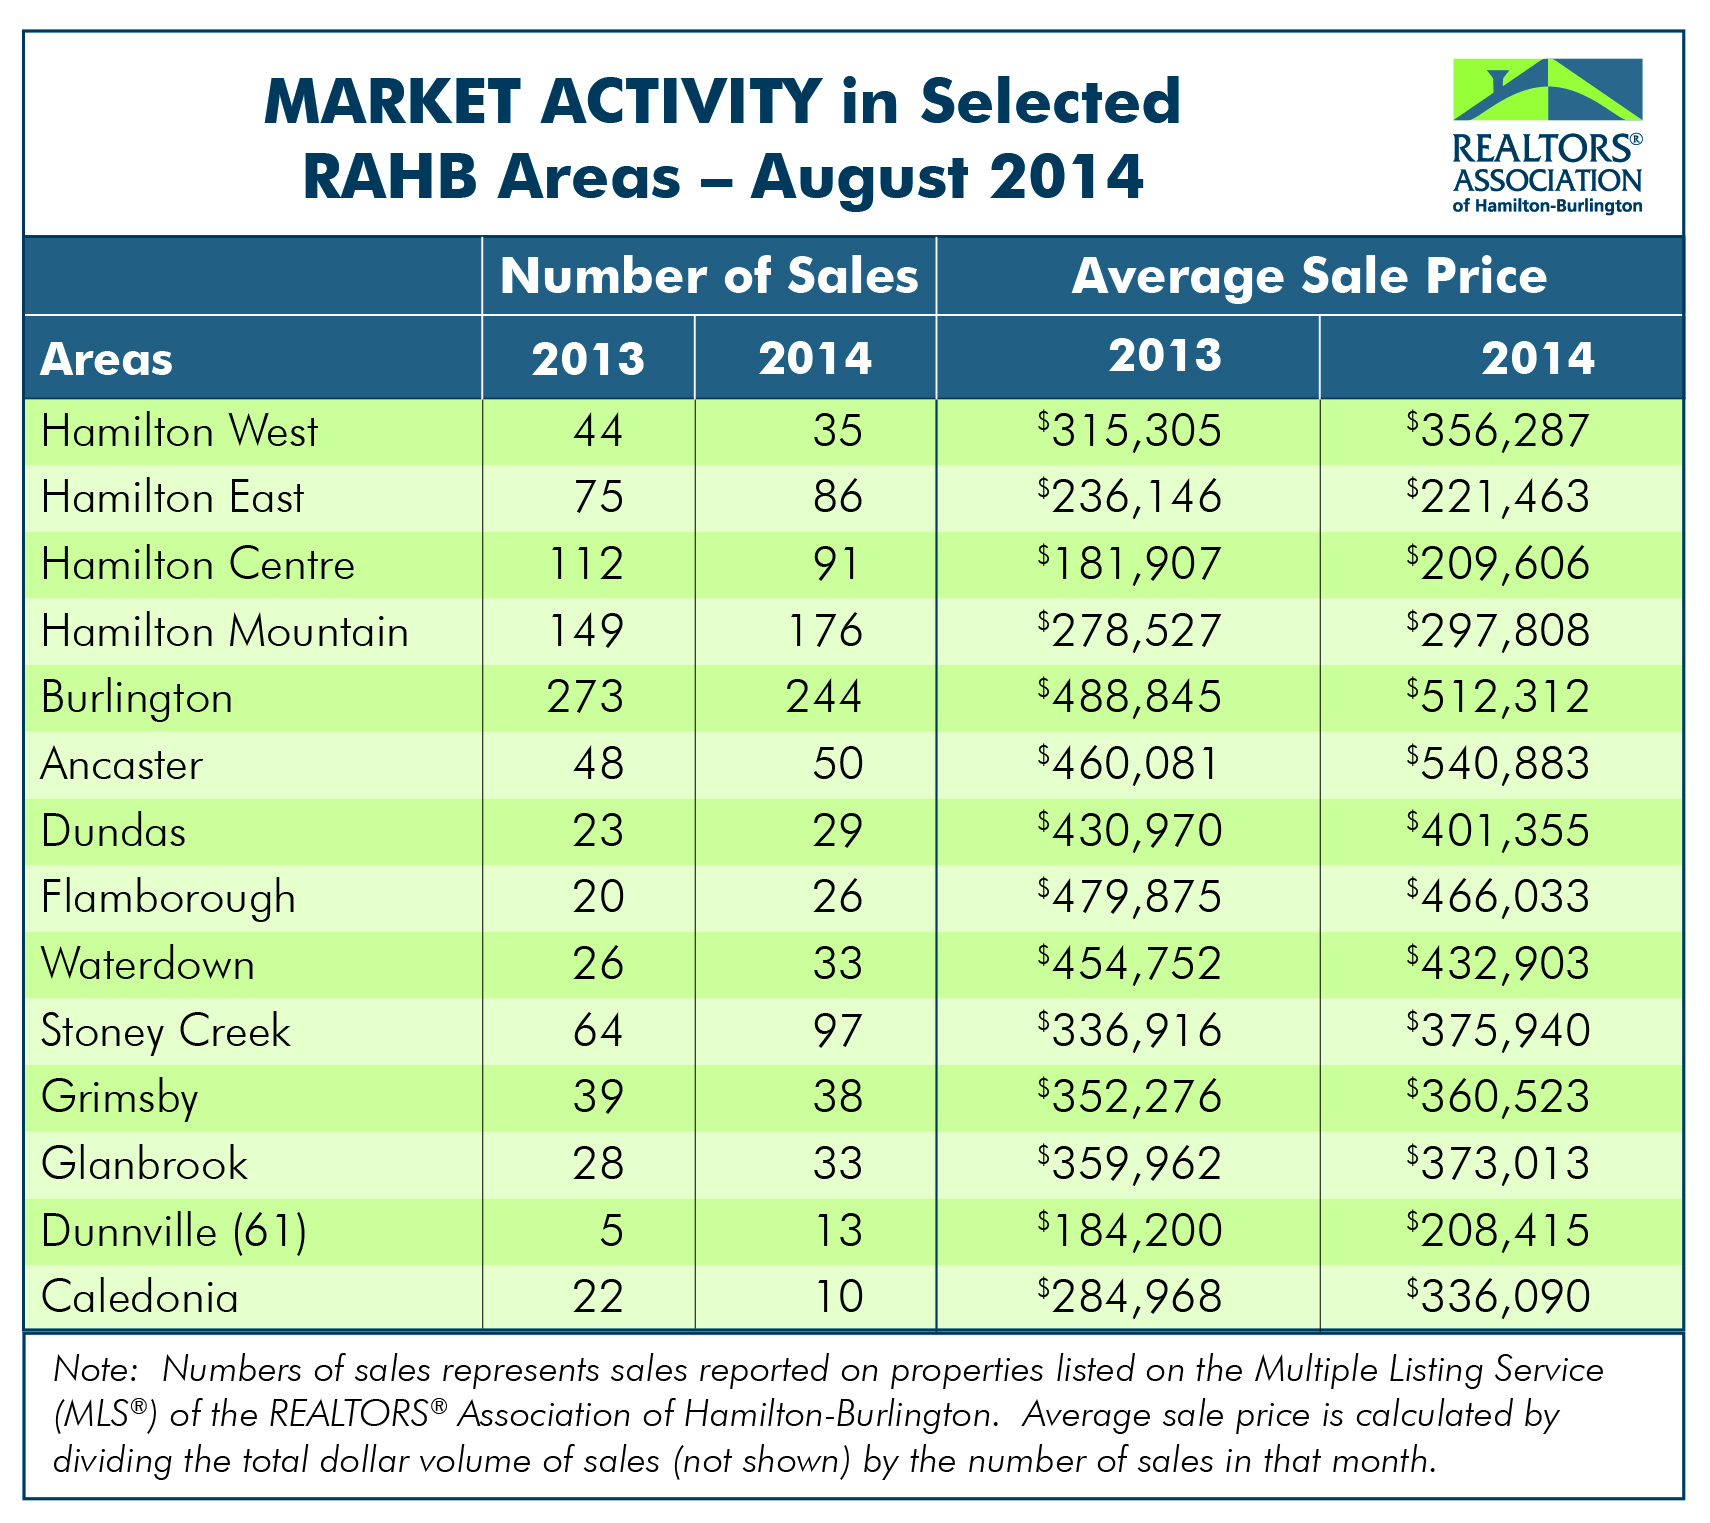 RAHB Market Activity for August